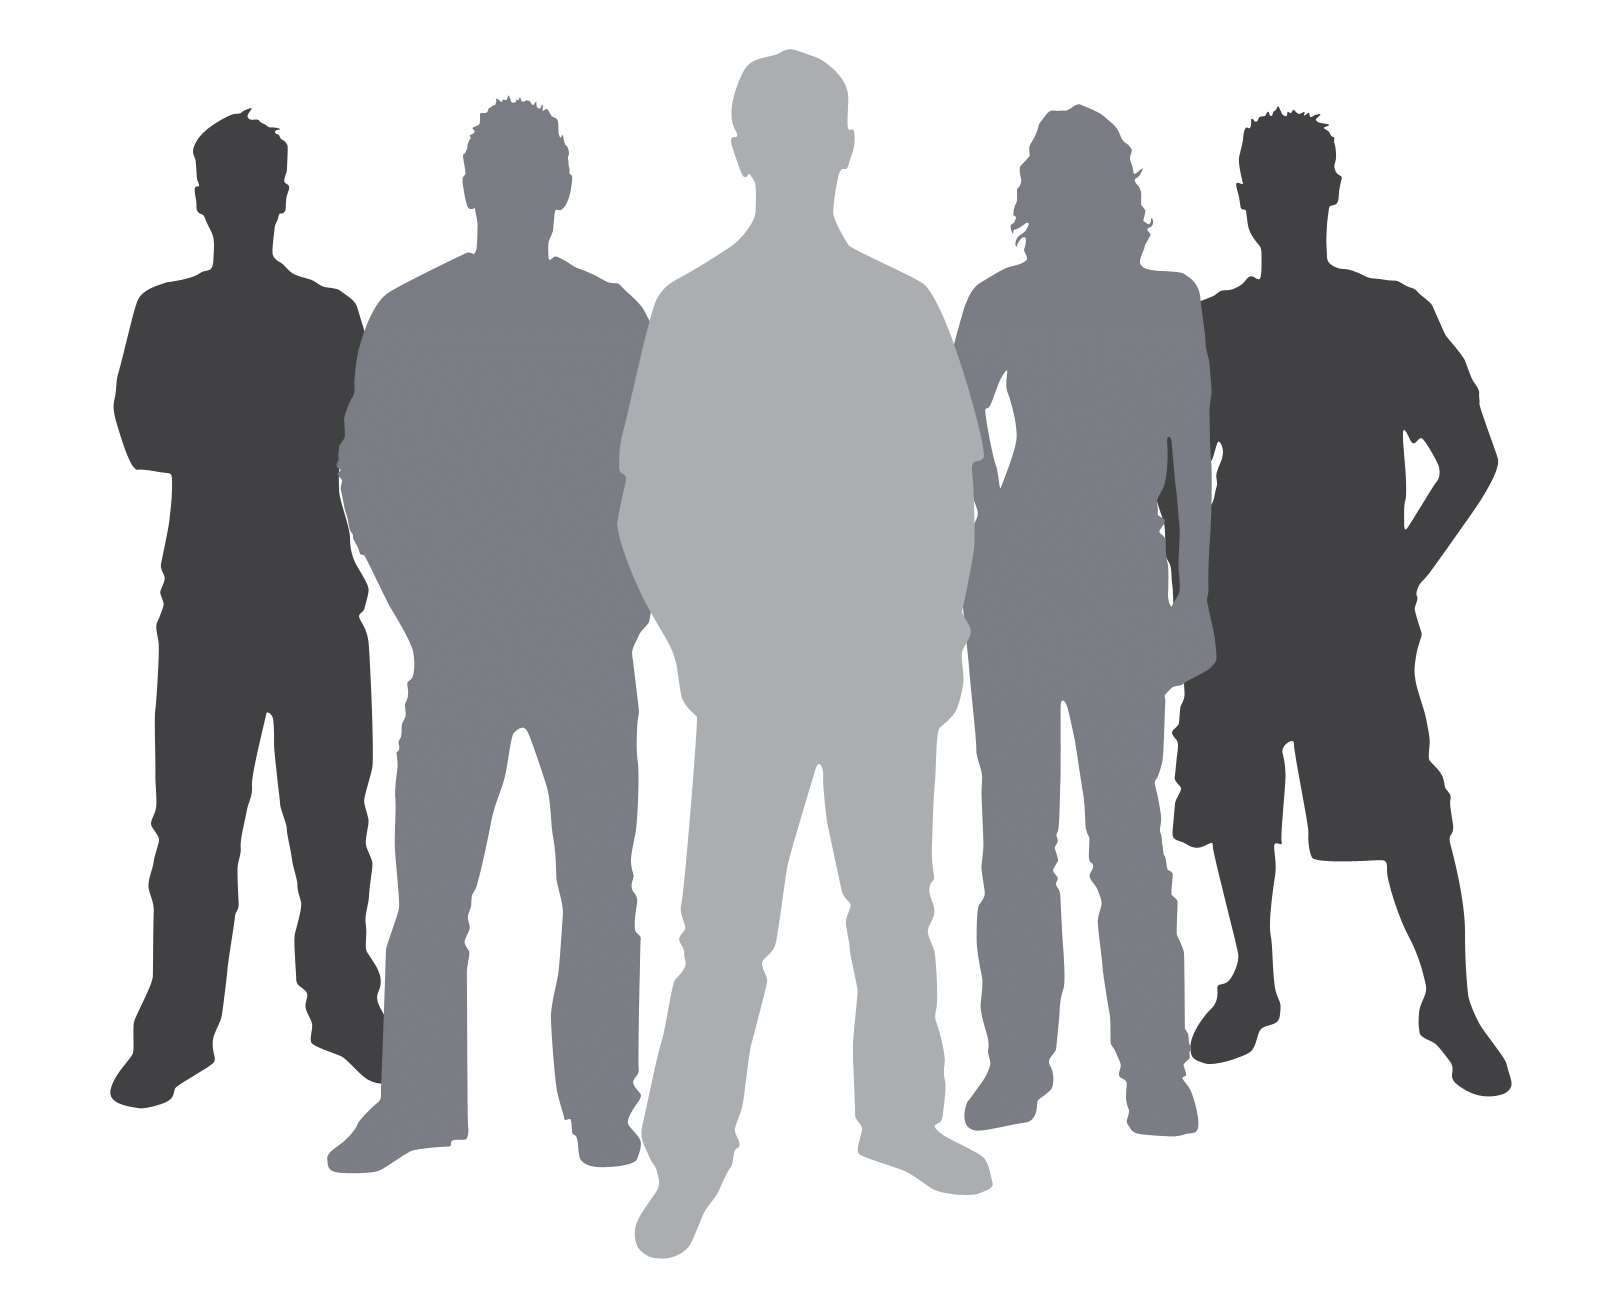 Business team silhouette at. Teamwork clipart person